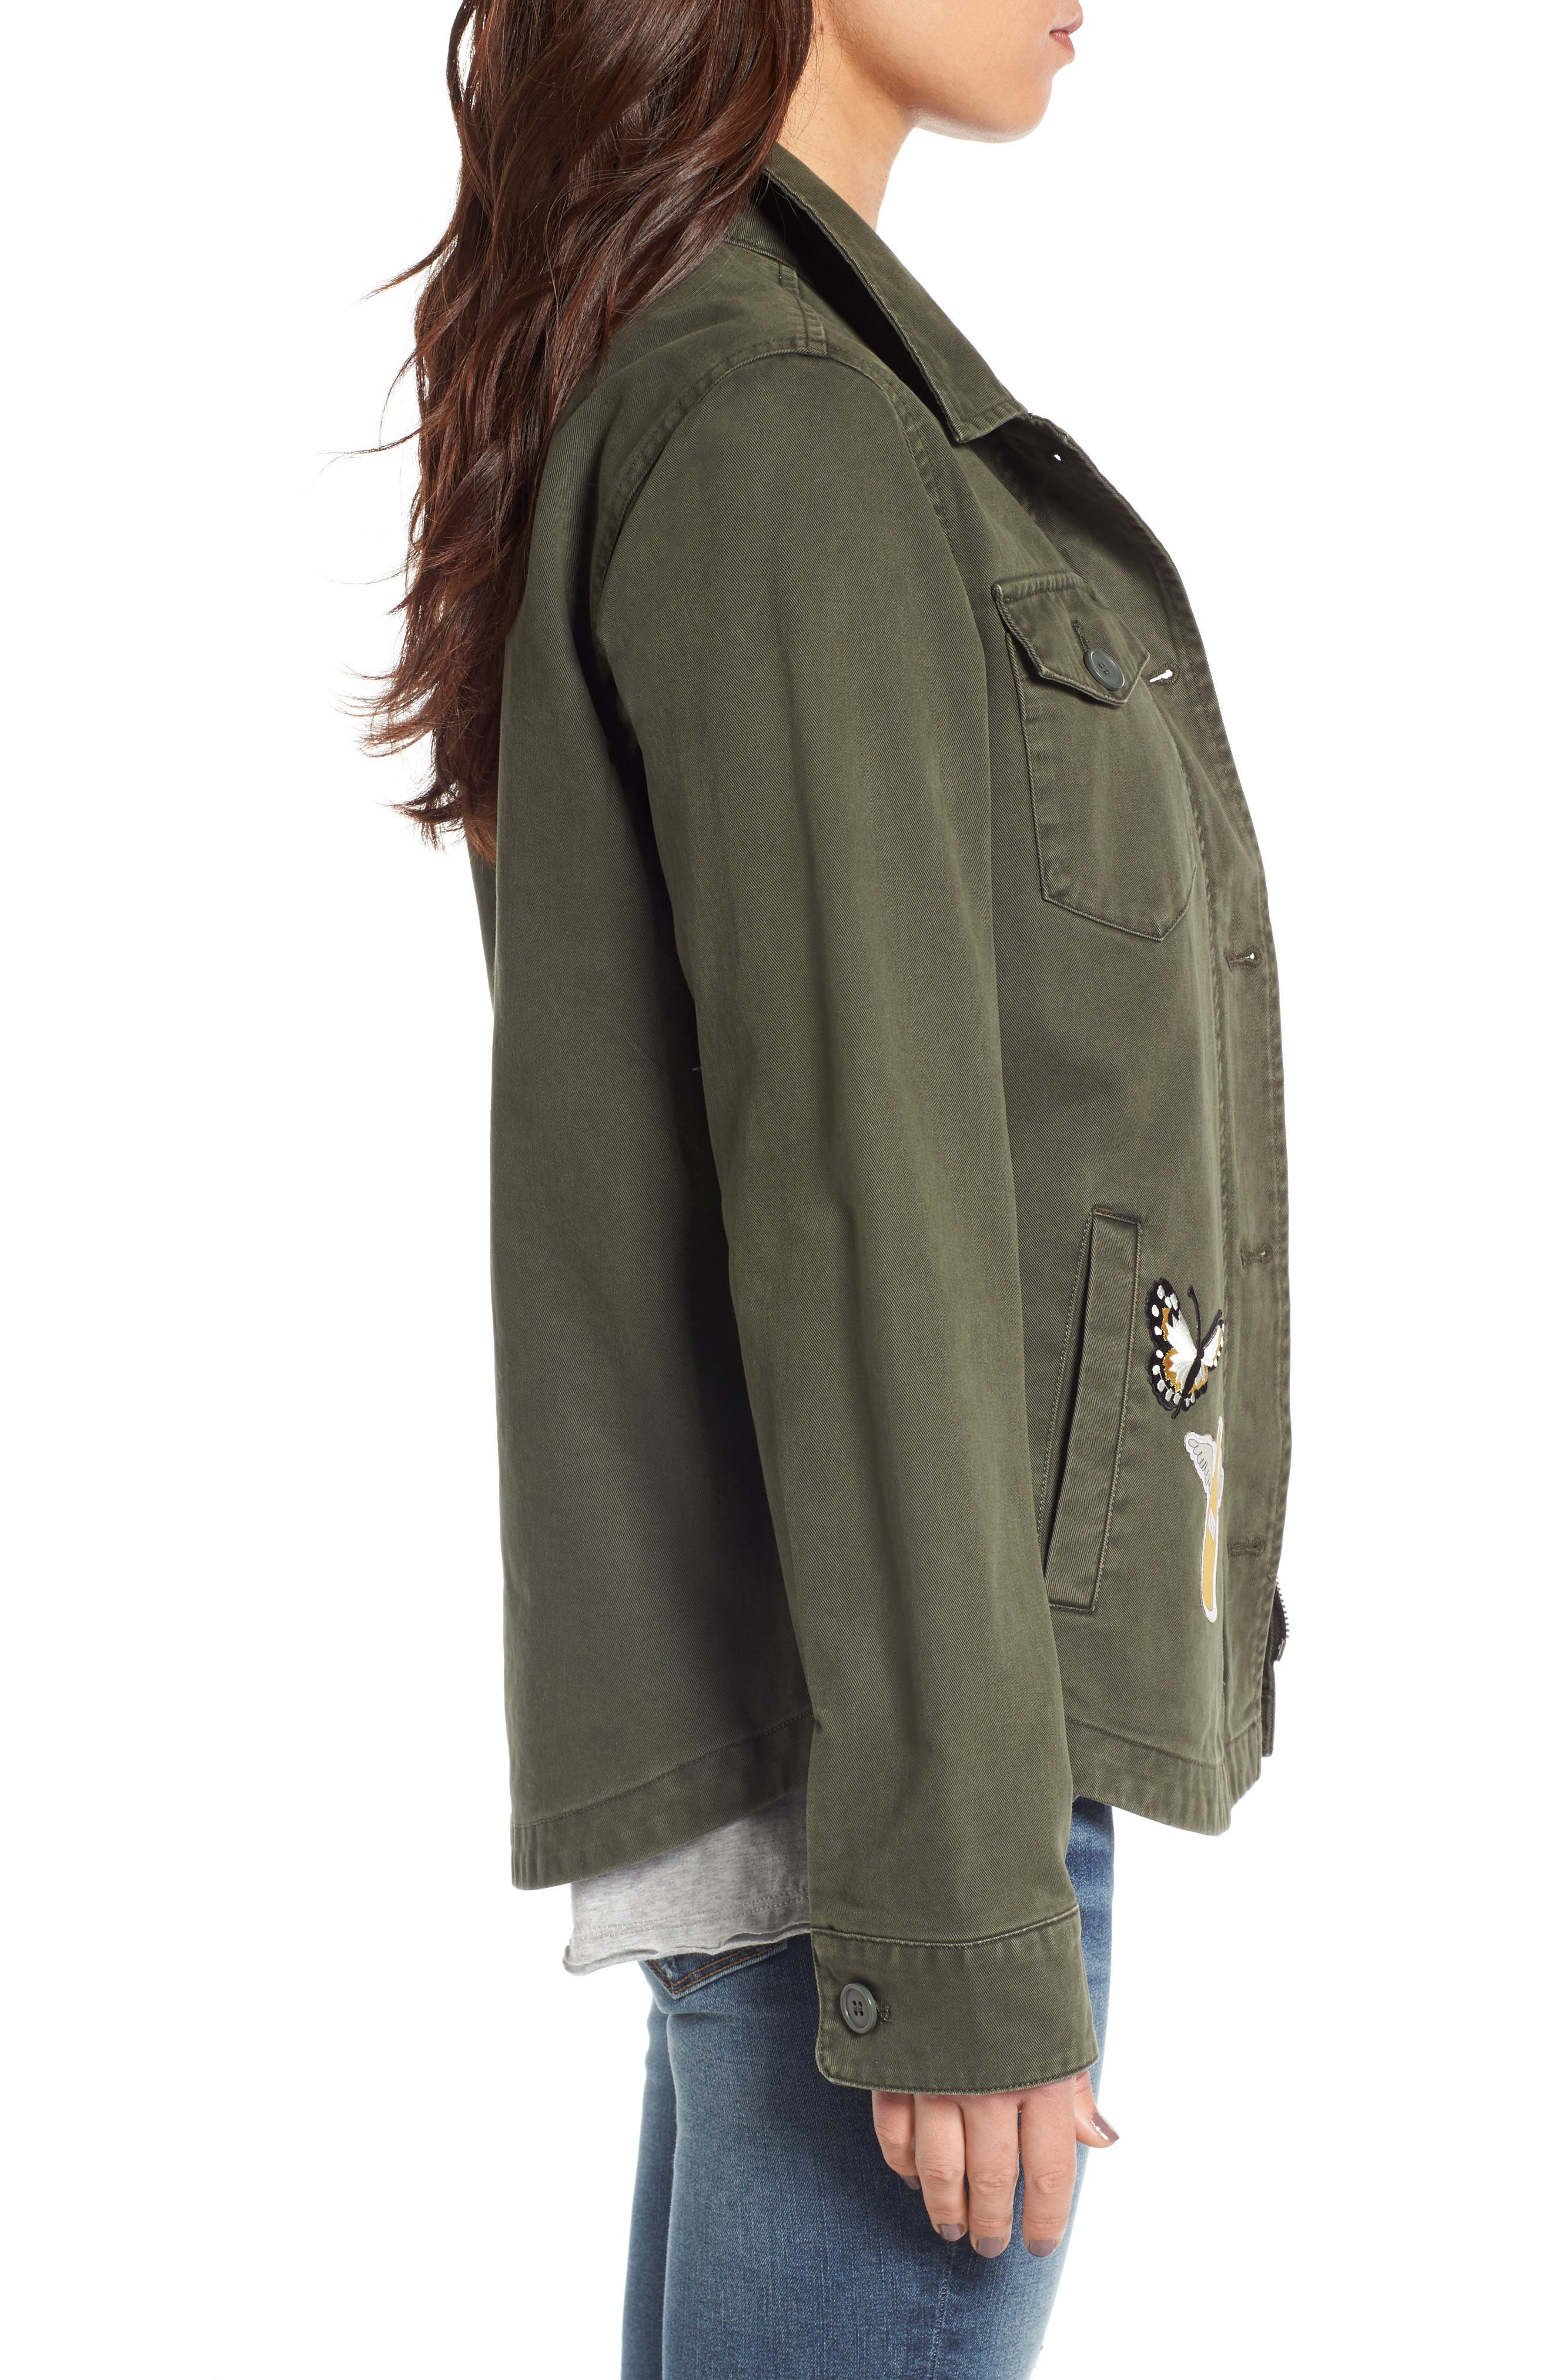 Cargo Jacket with Patches,                             Alternate thumbnail 3, color,                             317